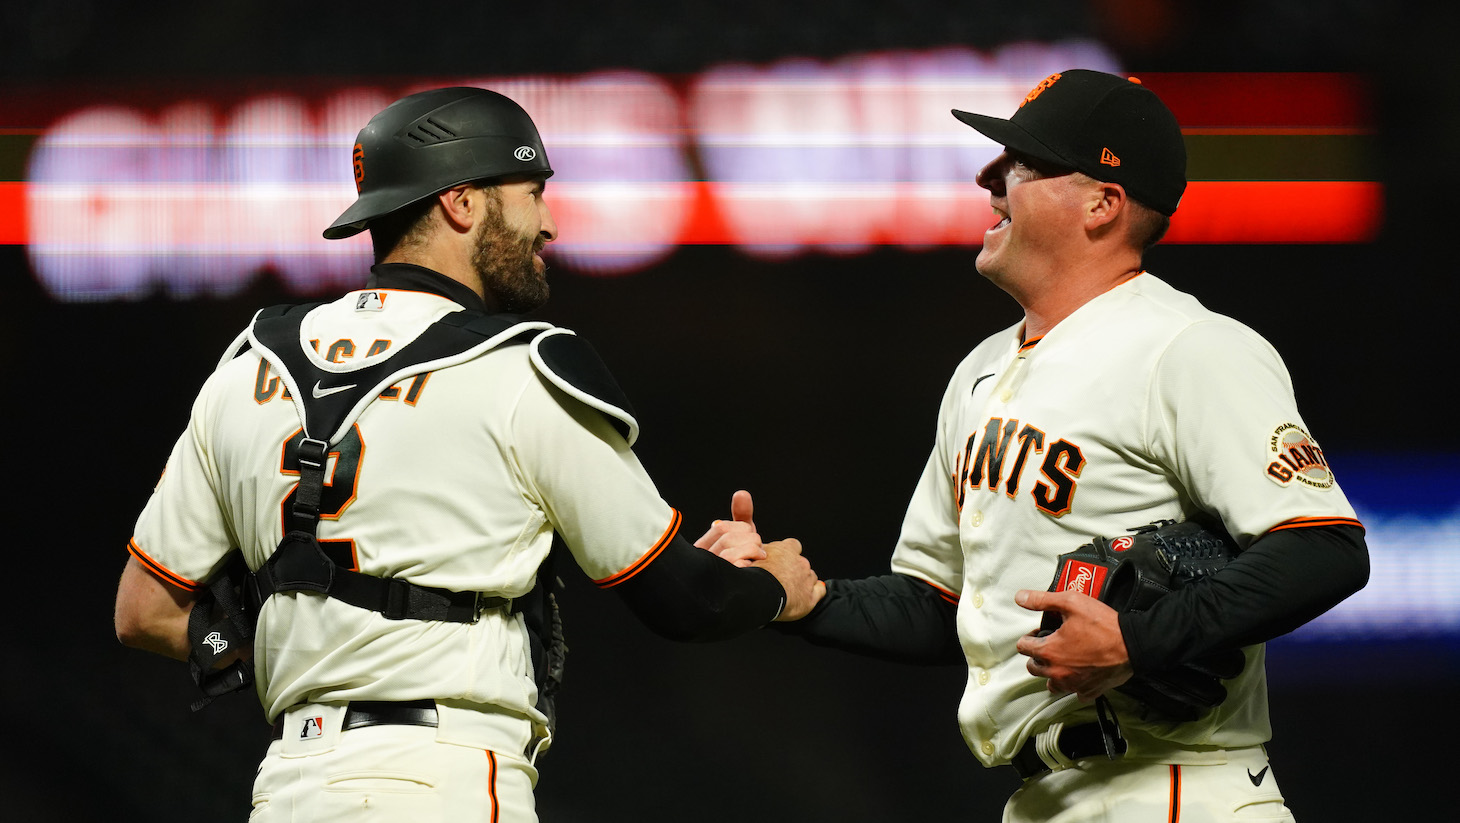 SAN FRANCISCO, CALIFORNIA - APRIL 22: Jake McGee #17 and Curt Casali #2 of the San Francisco Giants celebrate beating the Miami Marlins at Oracle Park on April 22, 2021 in San Francisco, California. (Photo by Daniel Shirey/Getty Images)